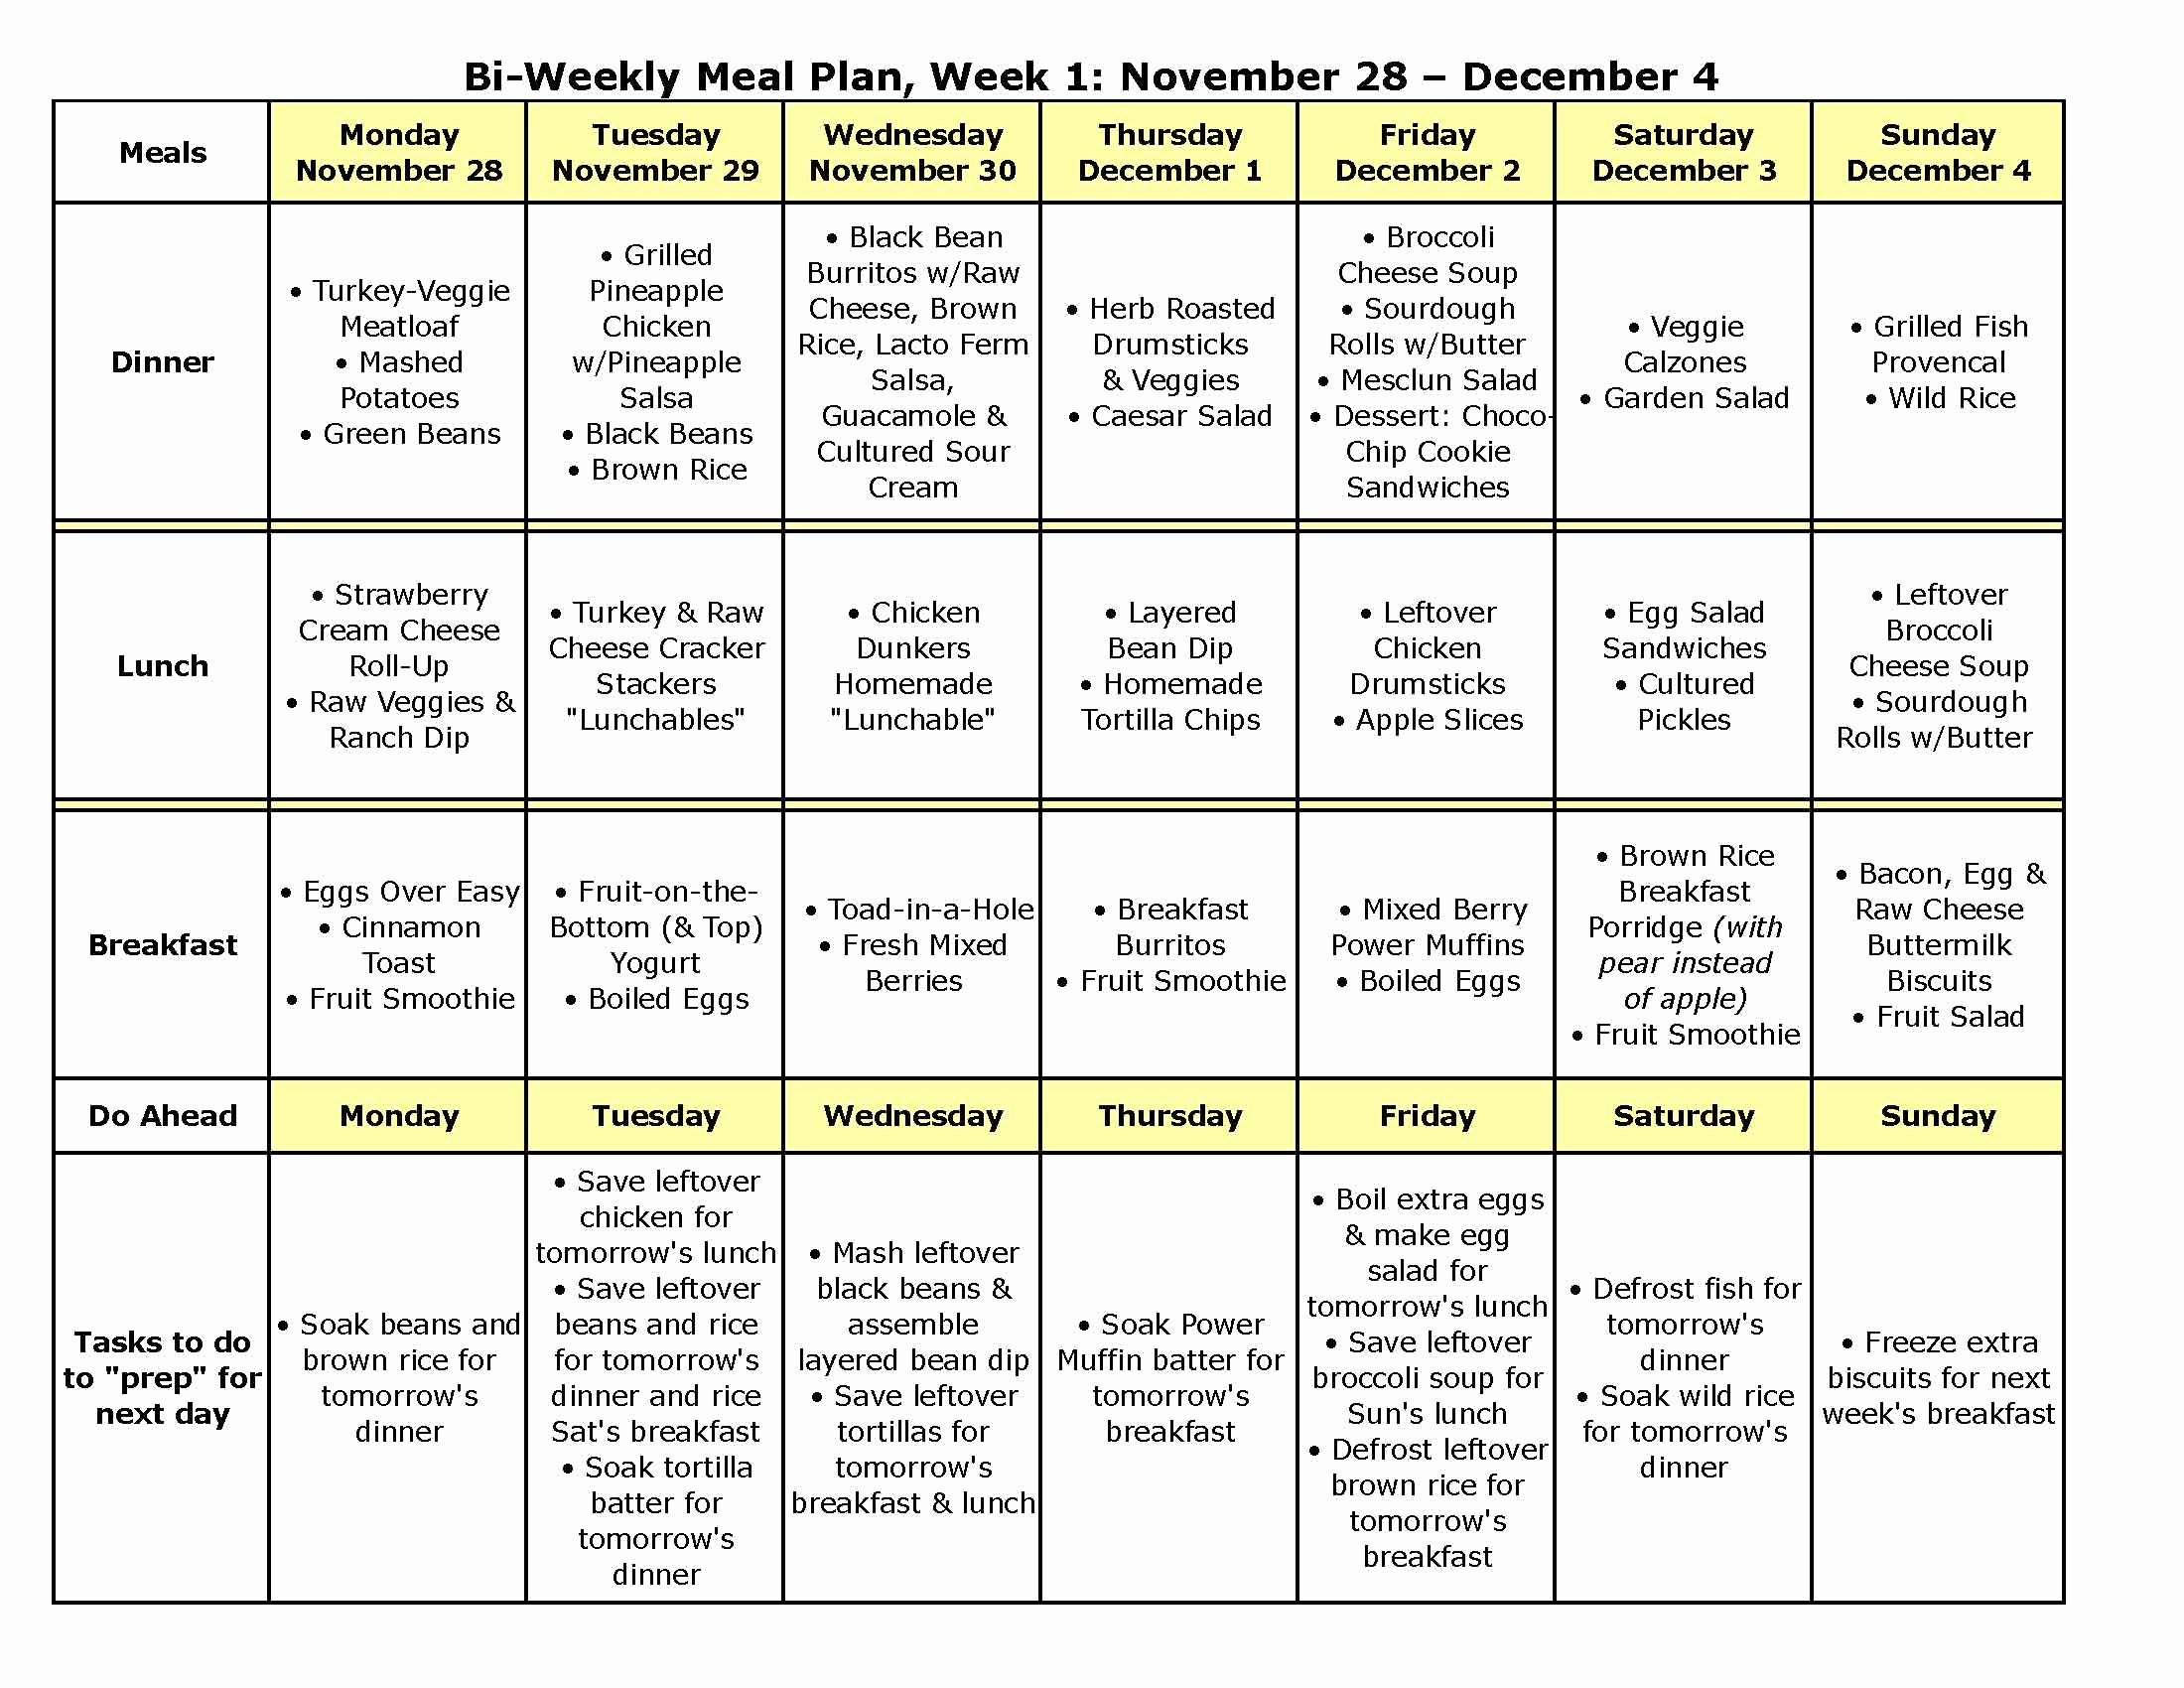 Monthly Meal Planner Template Unique Bi Weekly Meal Plan 9a Has Recipes too